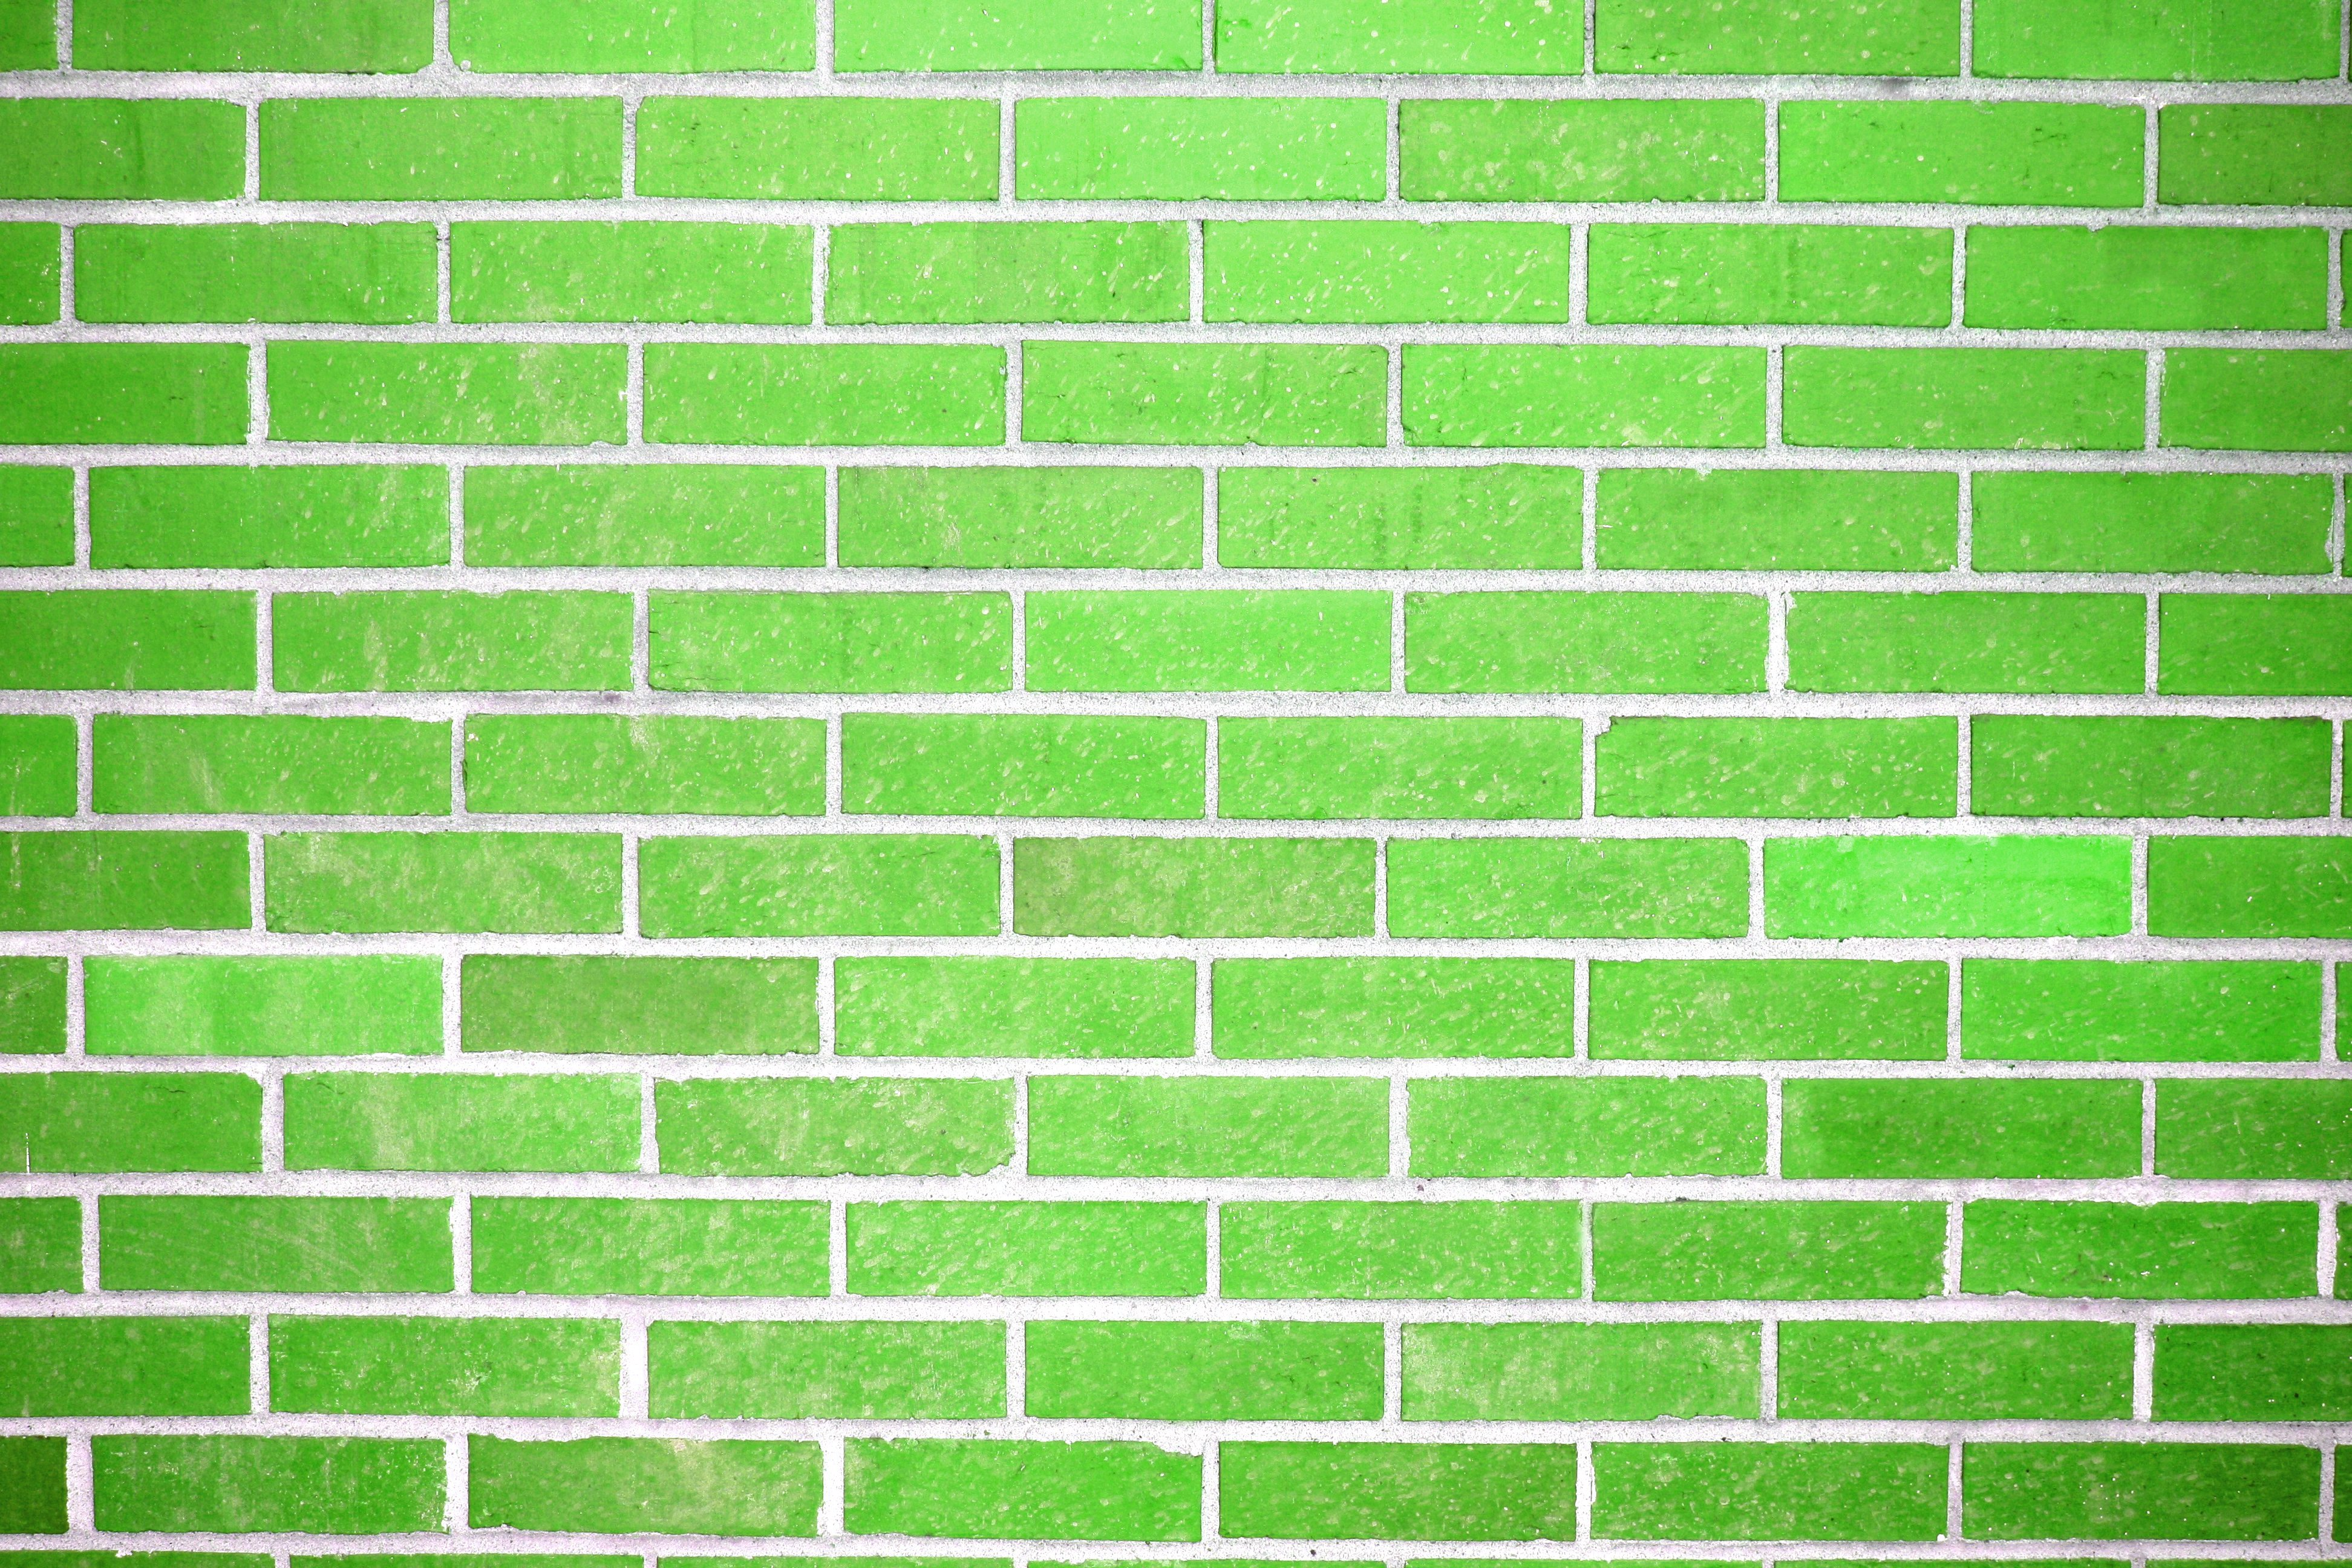 Lime green brick wall texture picture free photograph photos lime green brick wall texture aloadofball Gallery